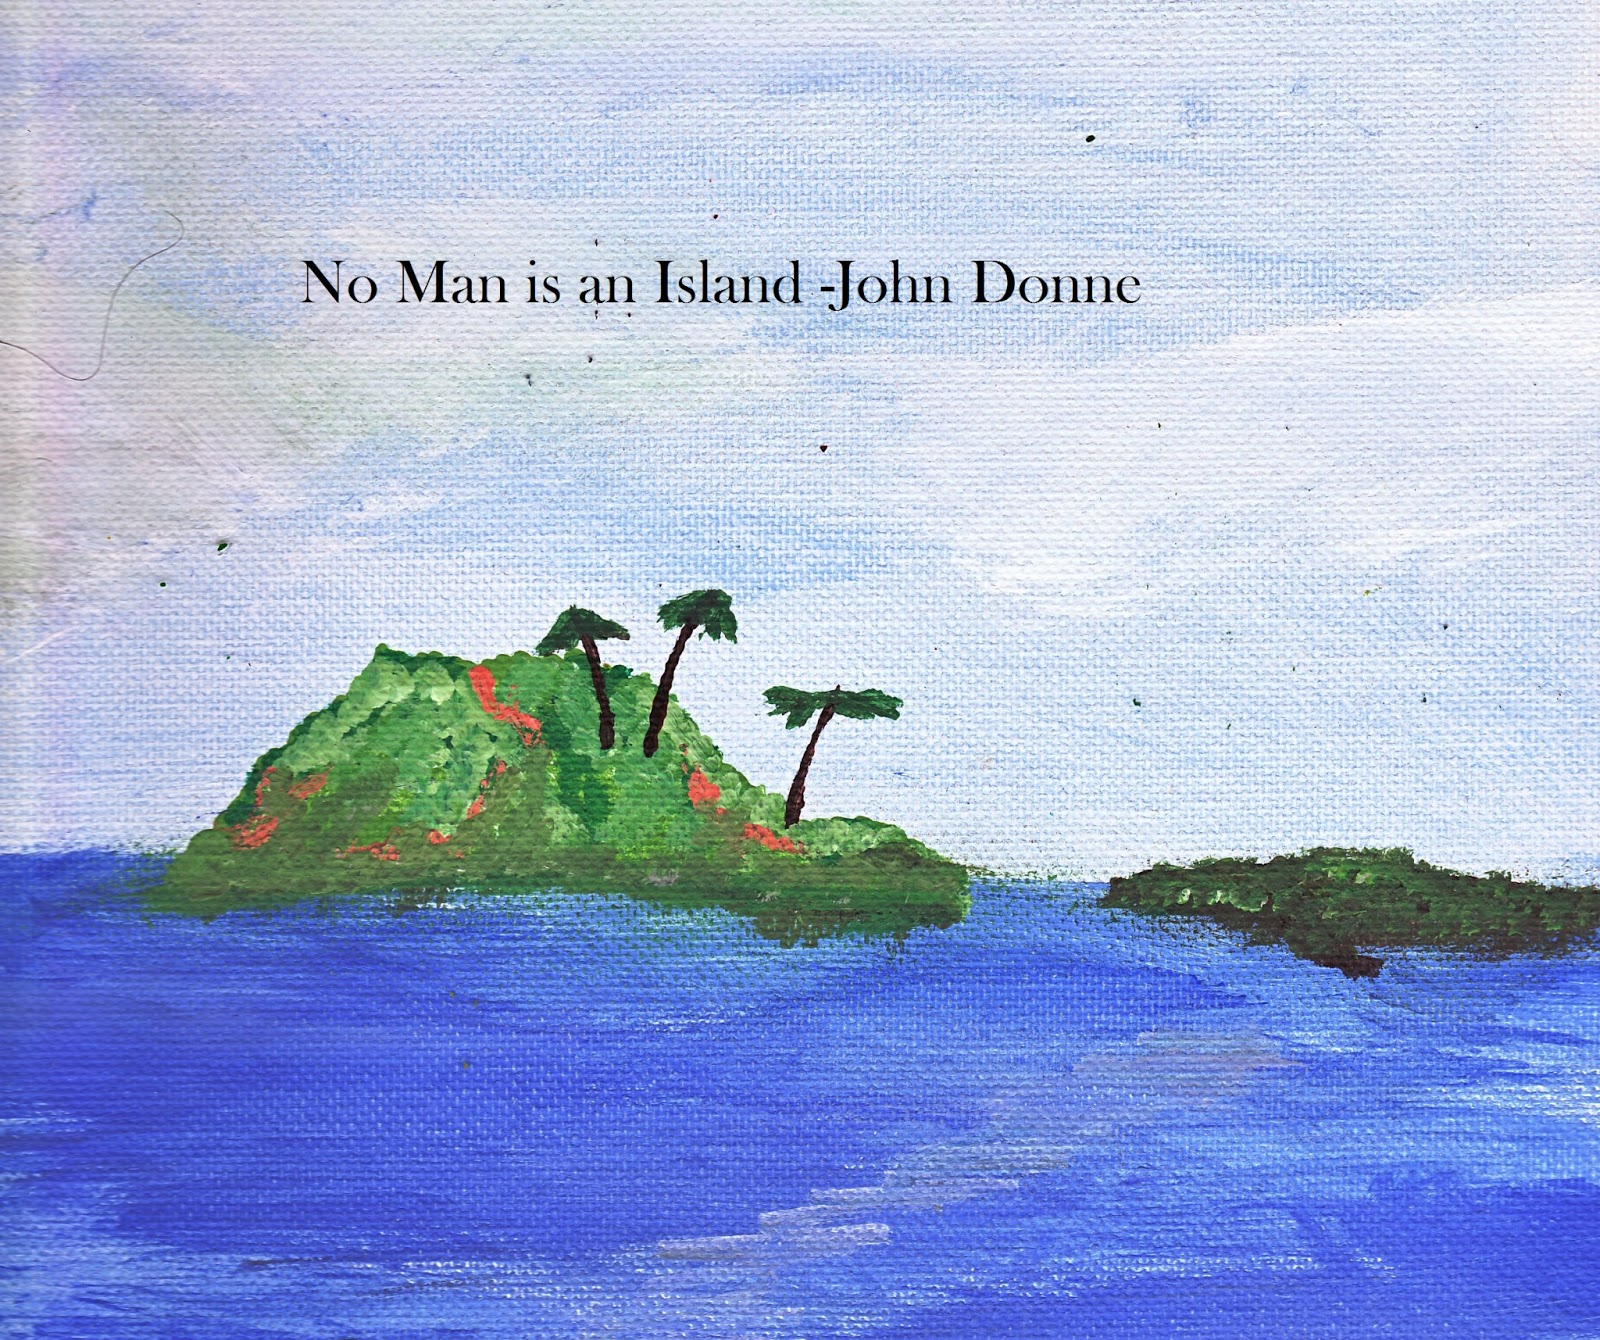 academic capital john donne poetry the flea and no man is an island john donne poetry the flea and no man is an island